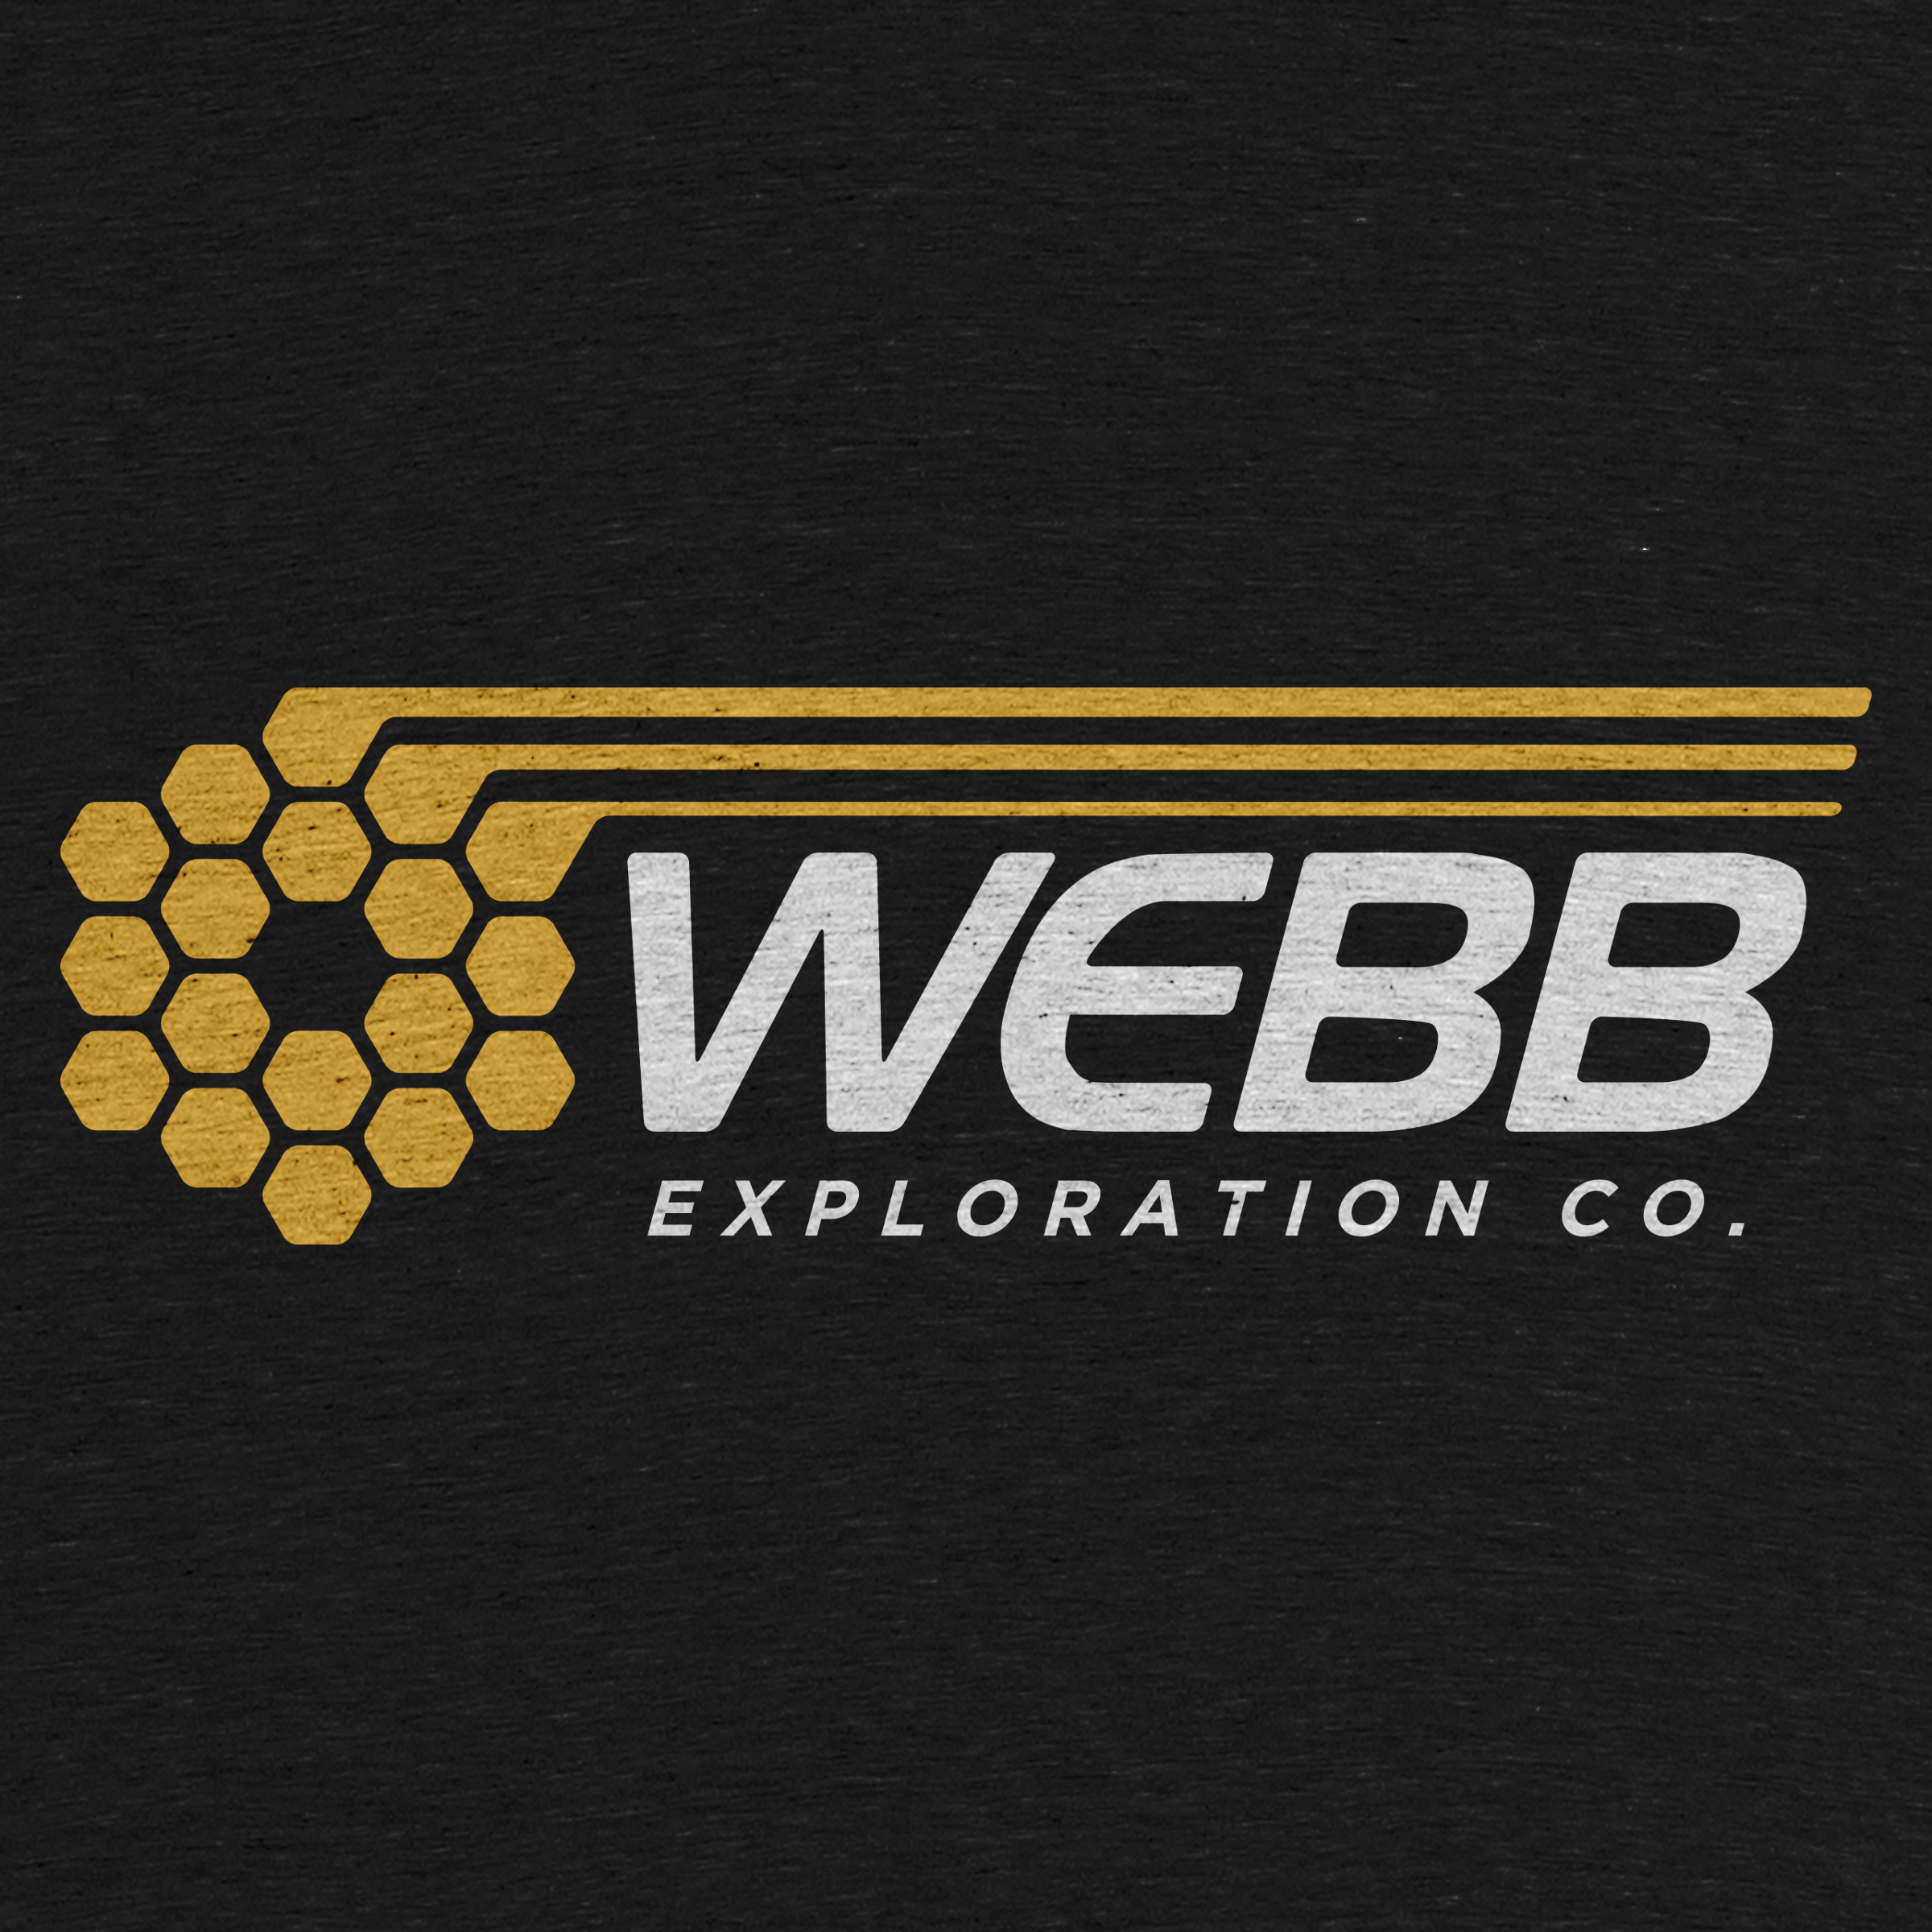 WEBB Exploration Co.